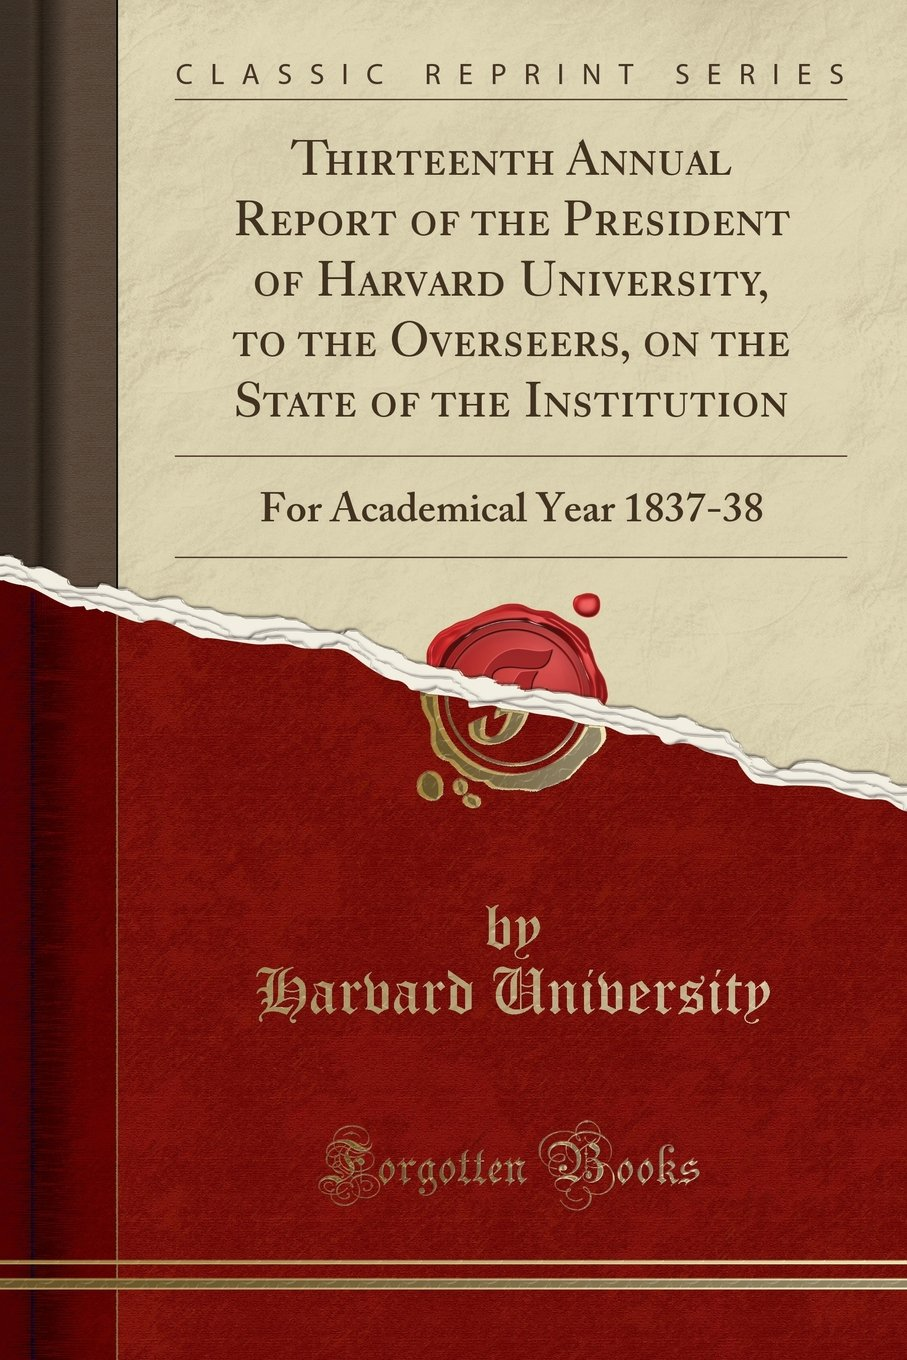 Read Online Thirteenth Annual Report of the President of Harvard University, to the Overseers, on the State of the Institution: For Academical Year 1837-38 (Classic Reprint) ebook